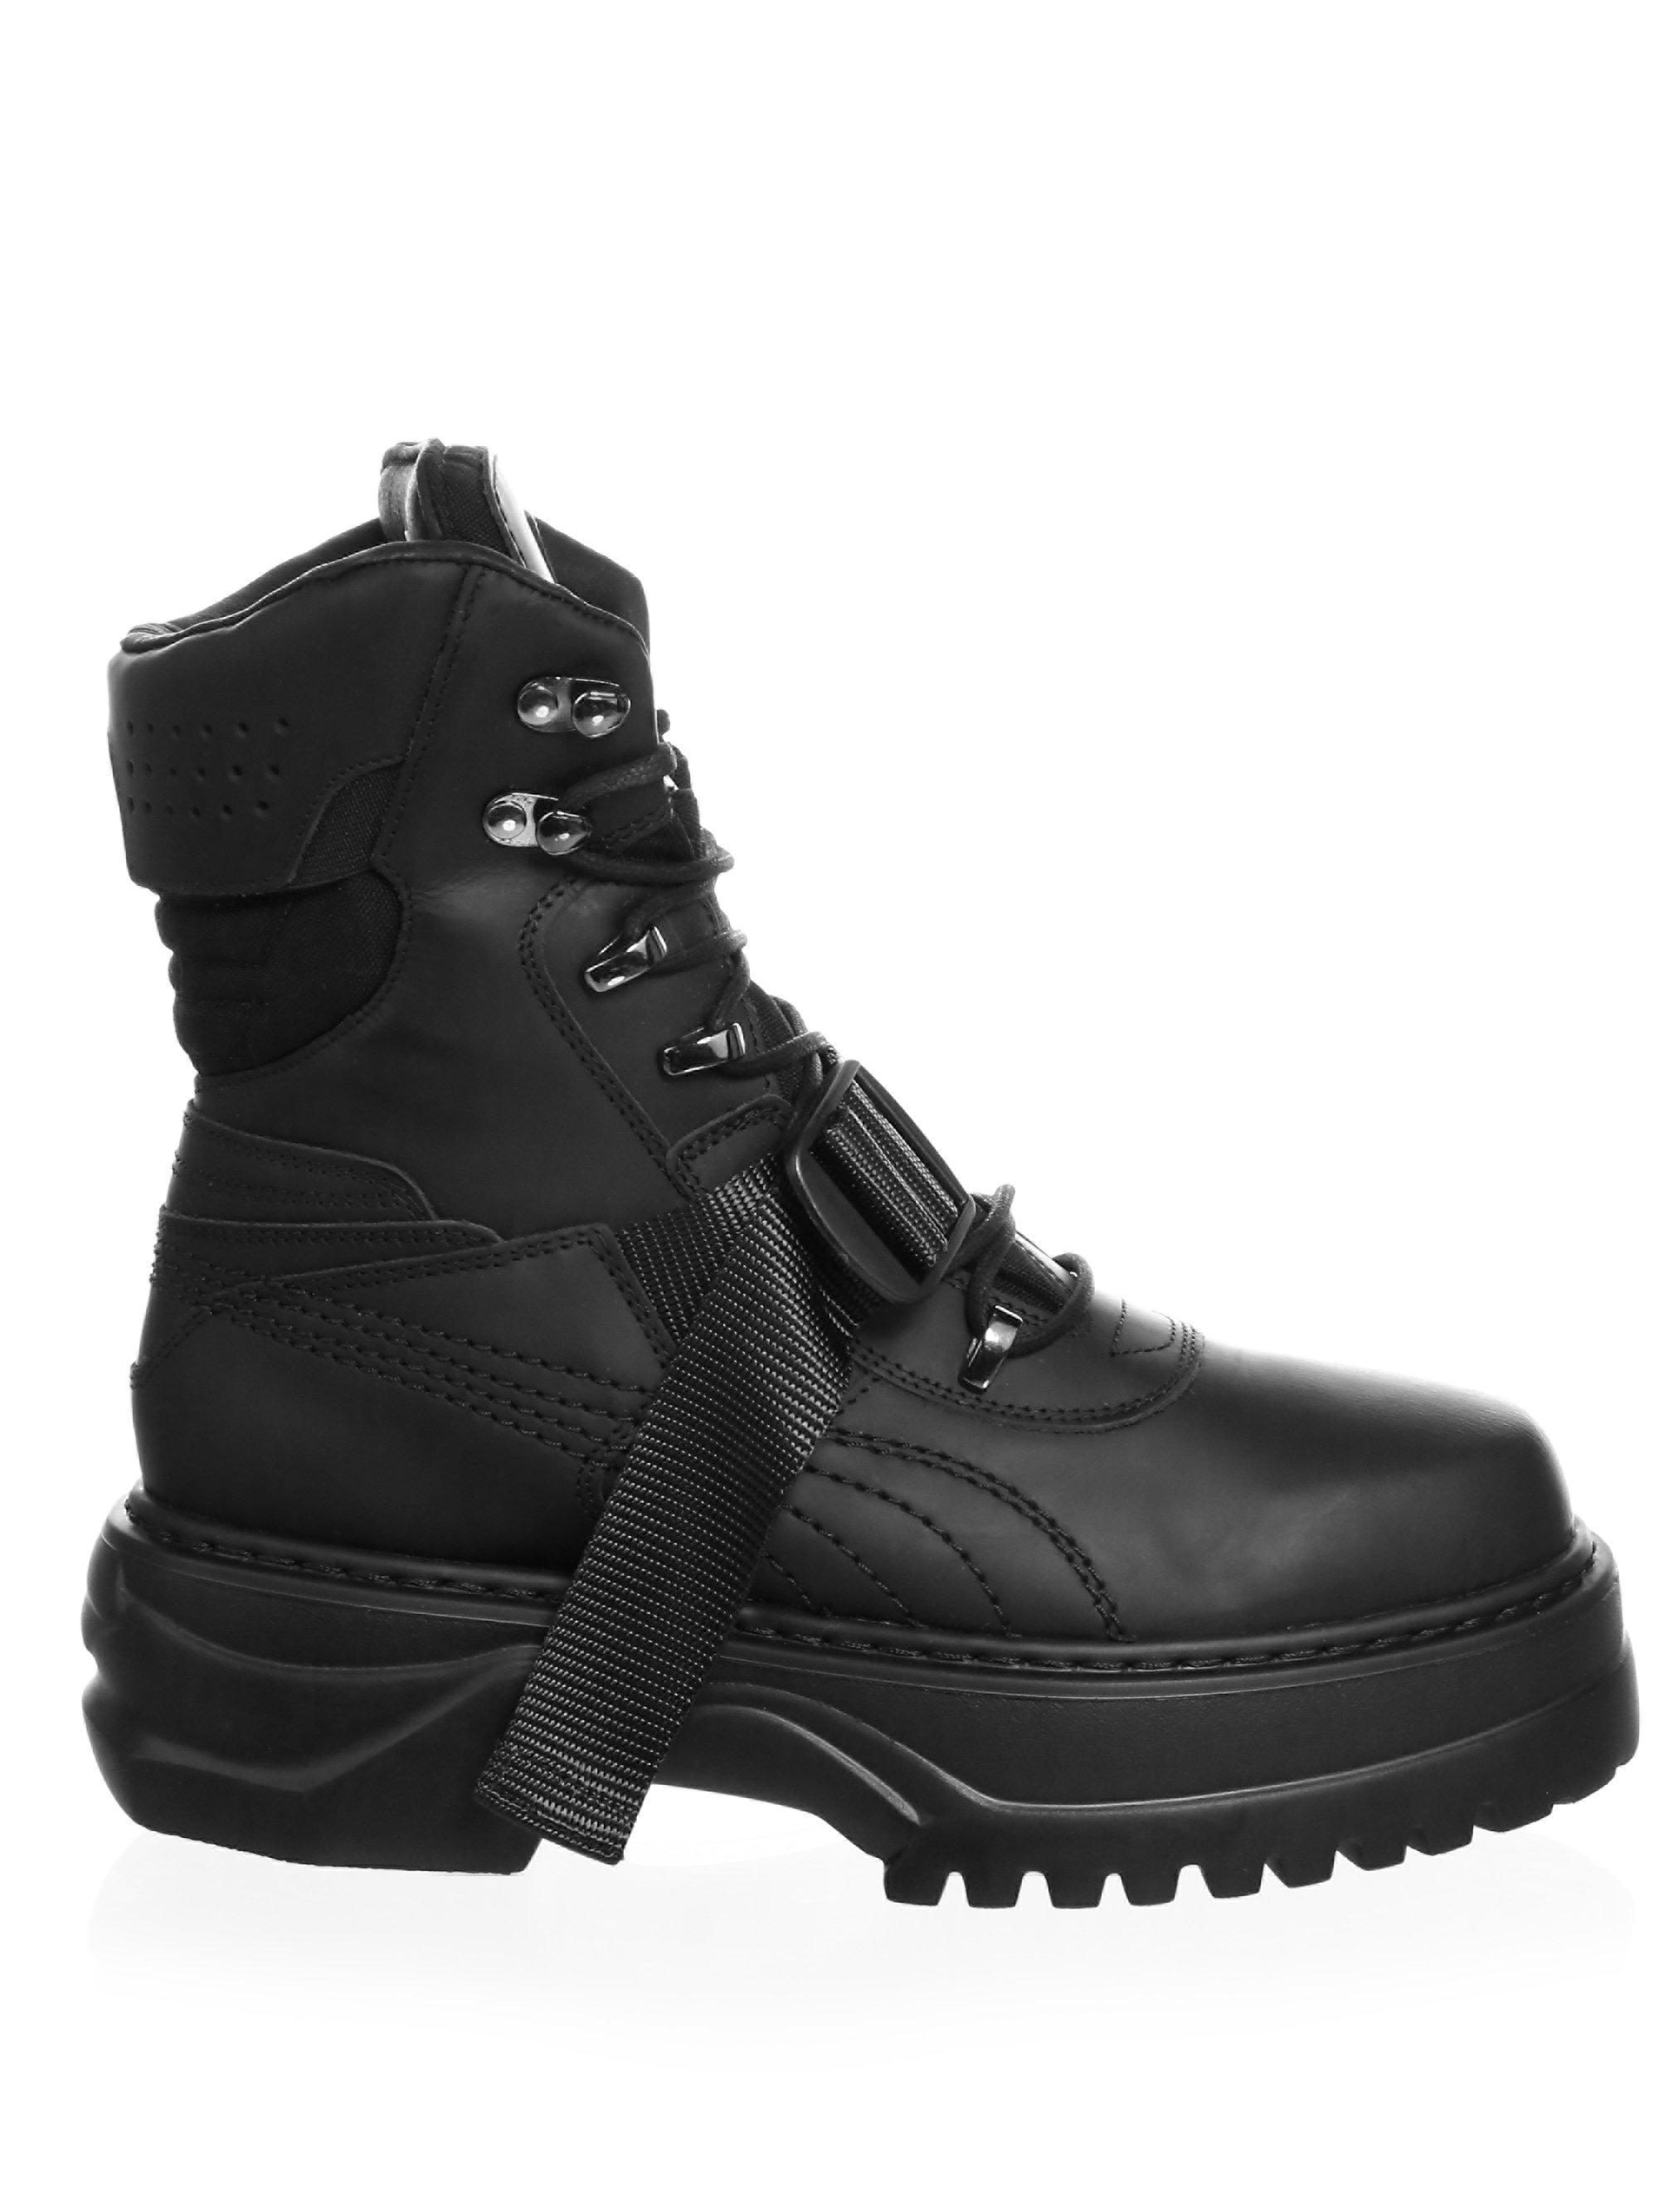 Lyst - PUMA Lace-up Leather Winter Boots in Black for Men 2df6108e2